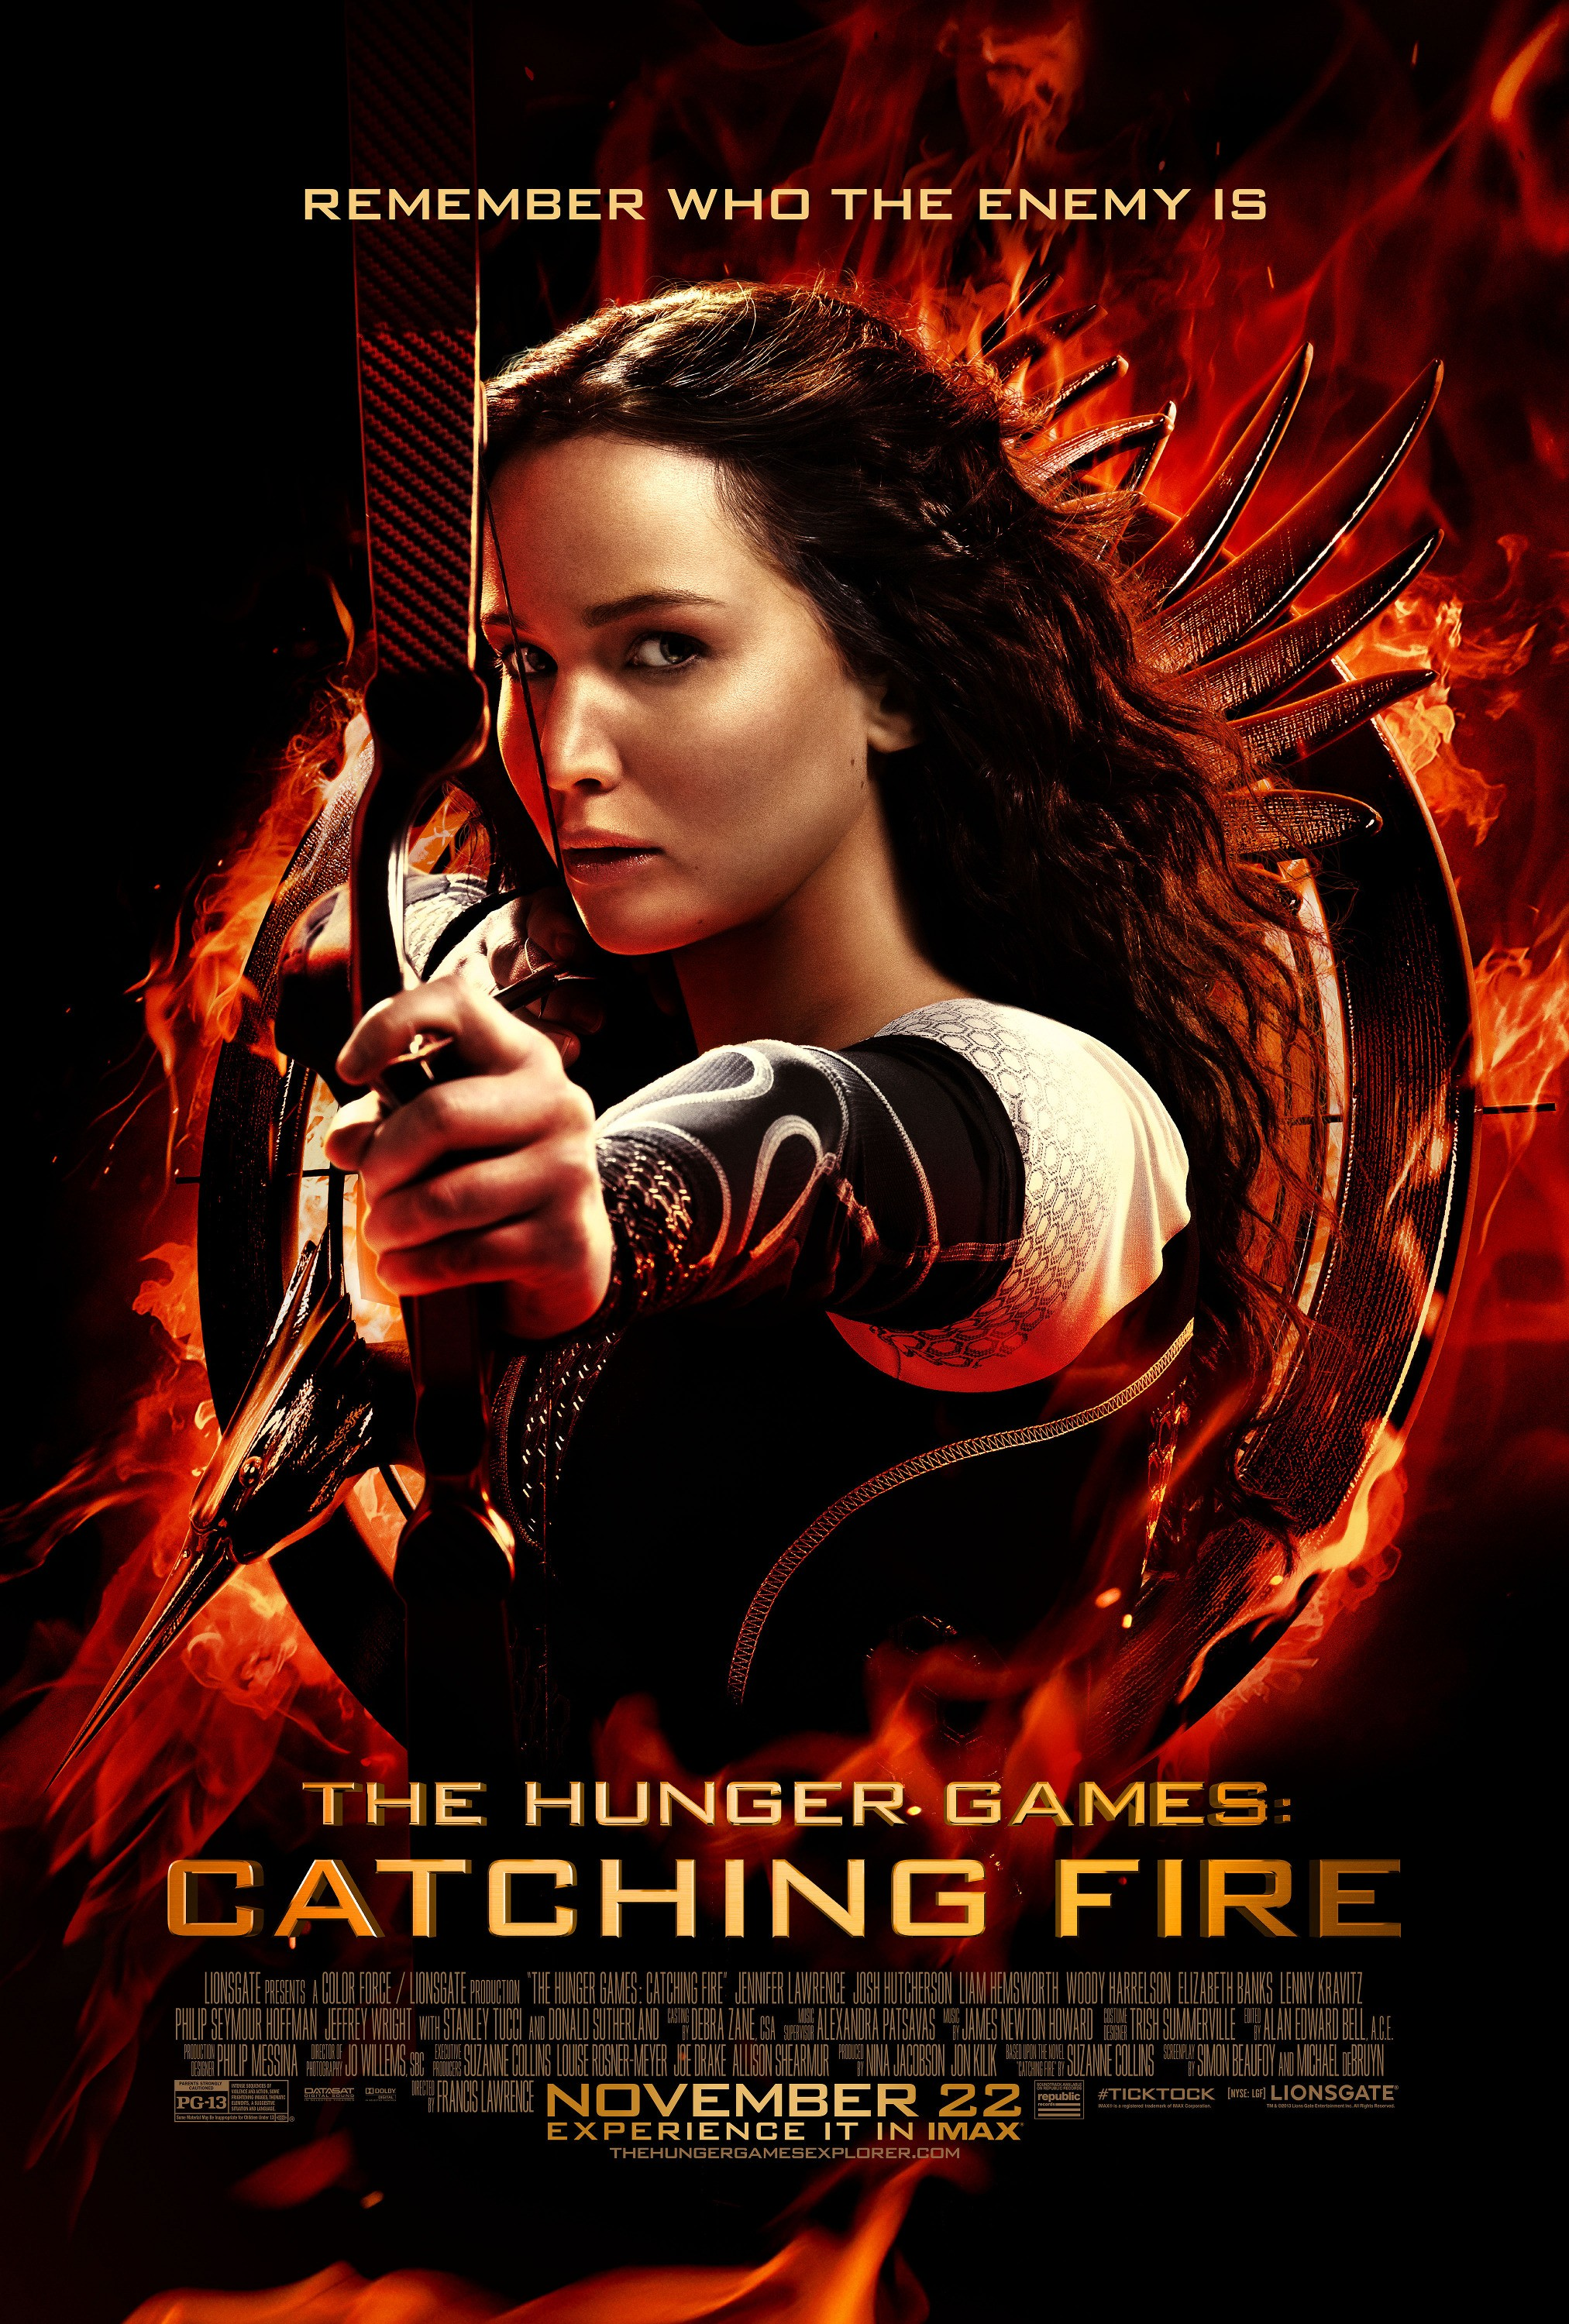 The Hunger Games Catching Fire-Official Poster Banner PROMO POSTER-30SETEMBRO2013